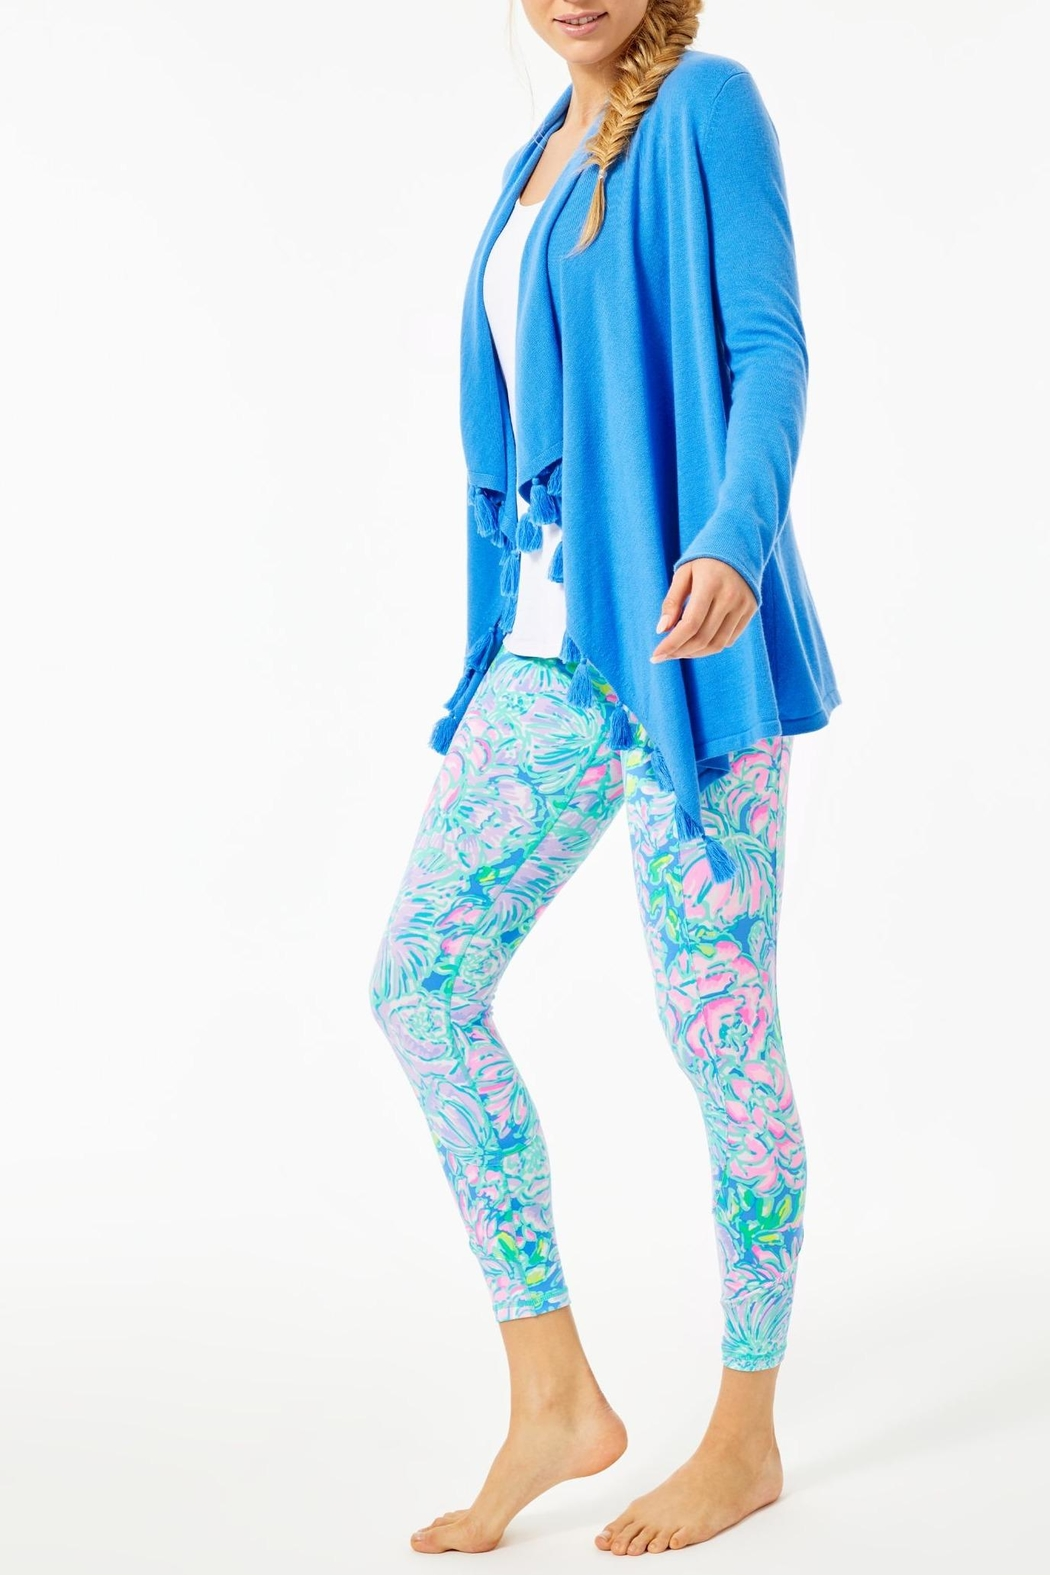 Lilly Pulitzer Catriona Tassel Cardigan - Back Cropped Image